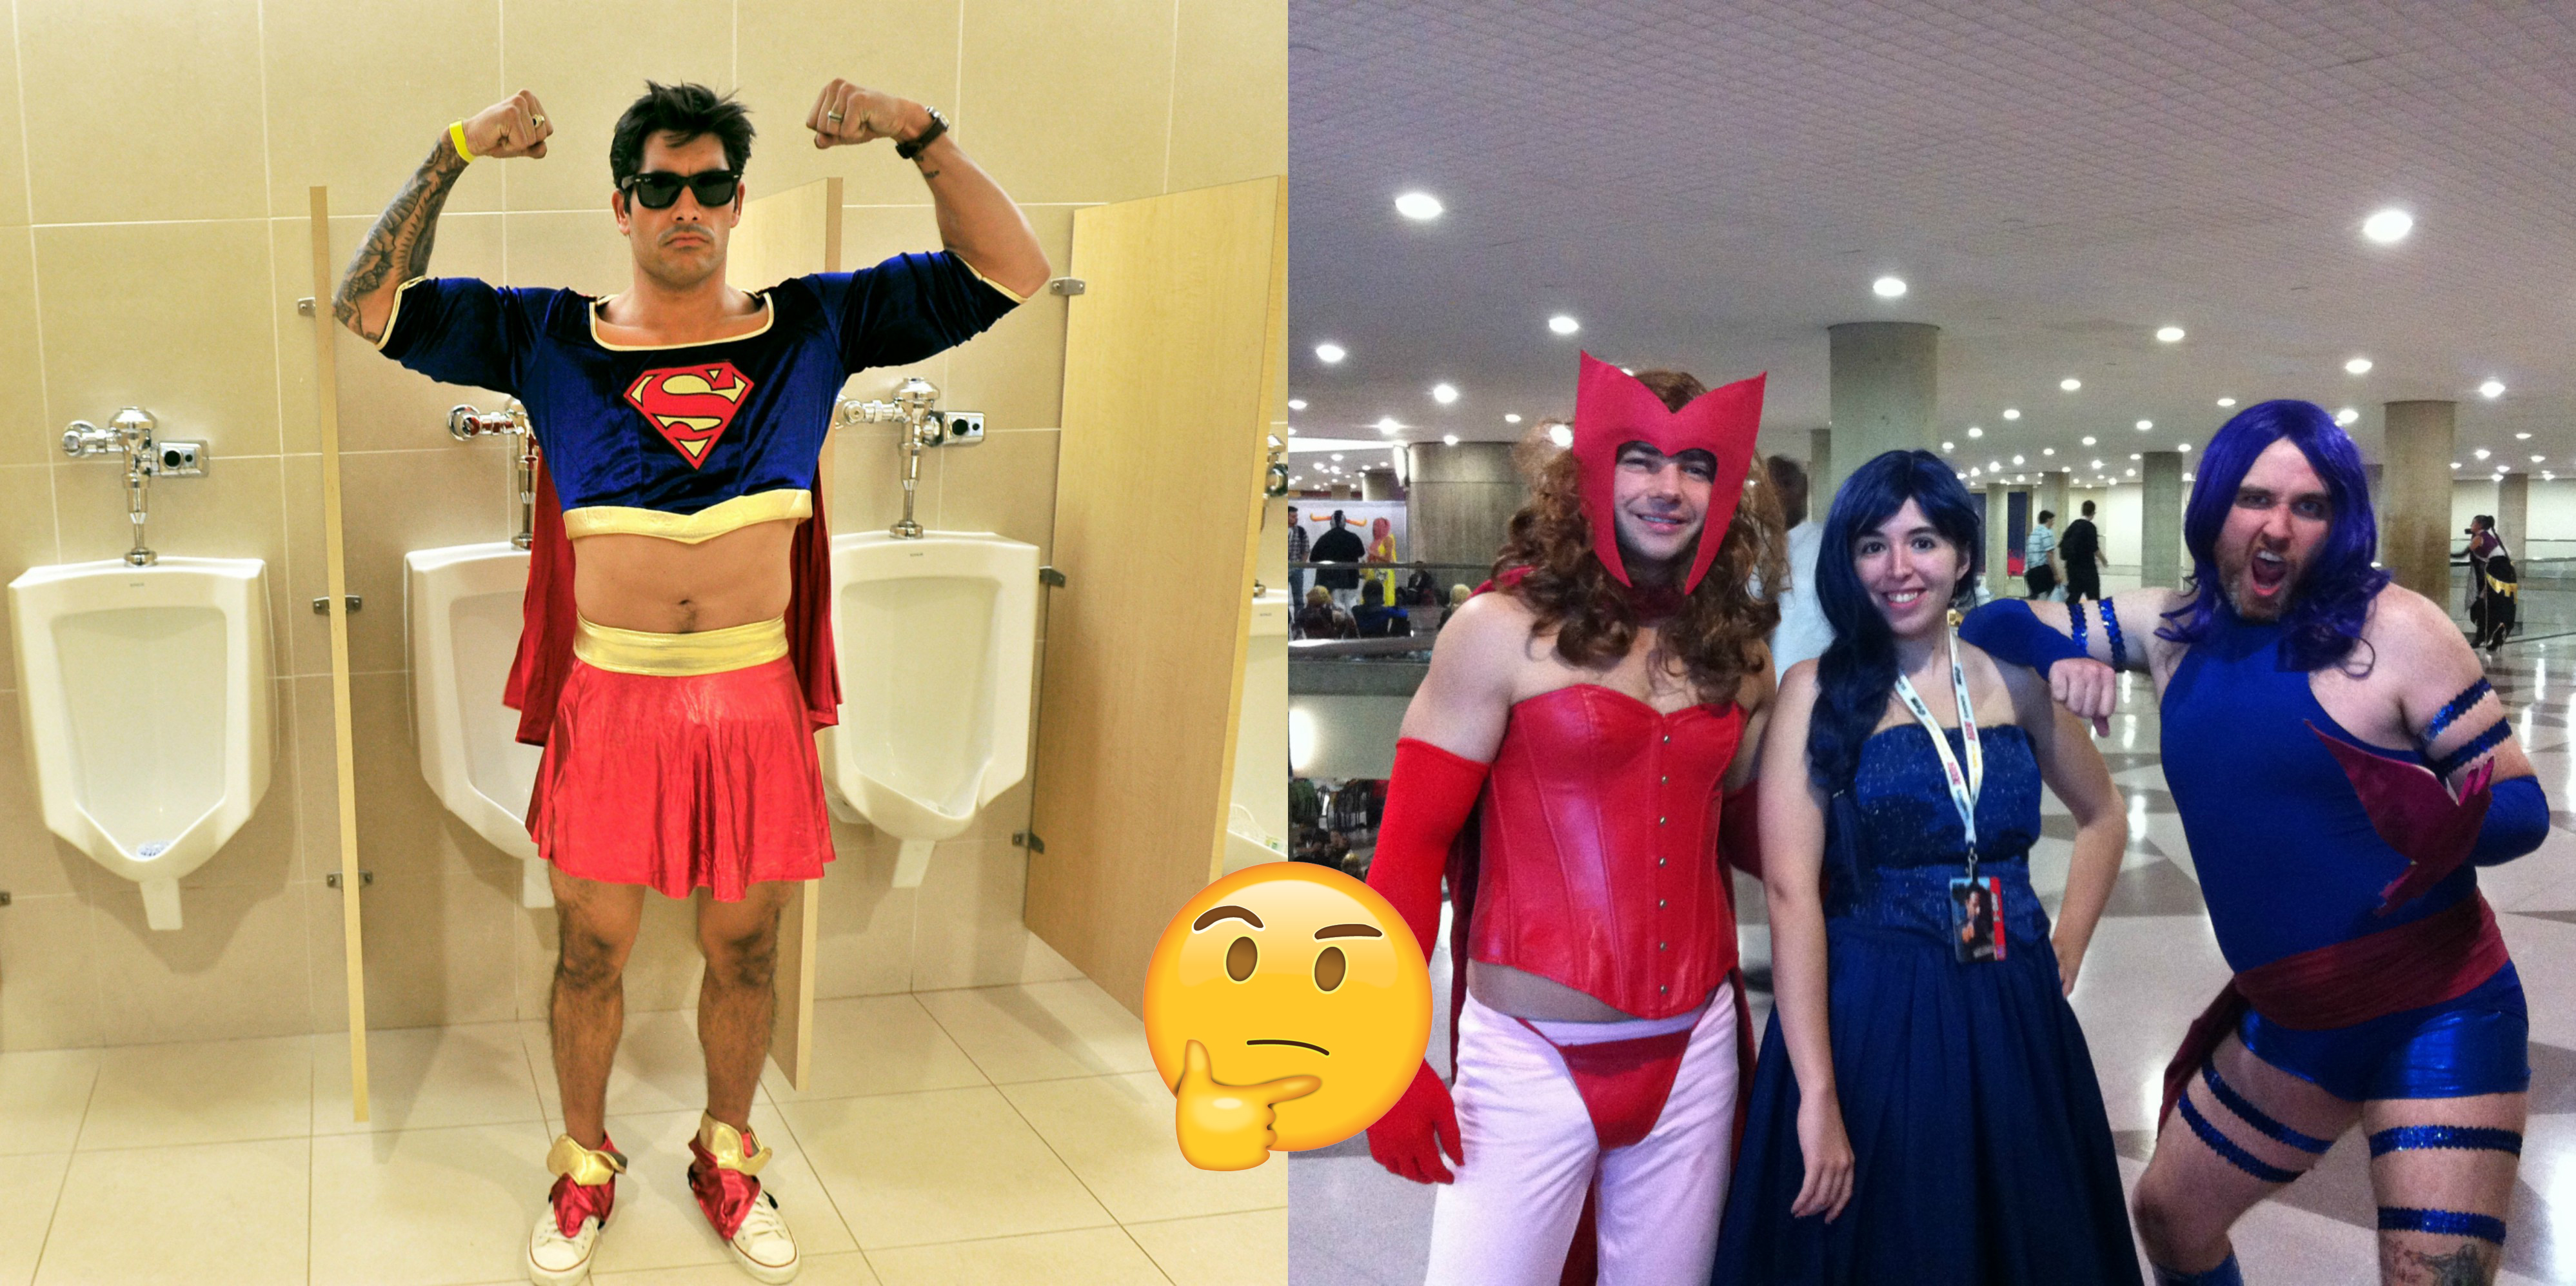 Male Cosplayers Dressed As Female Characters